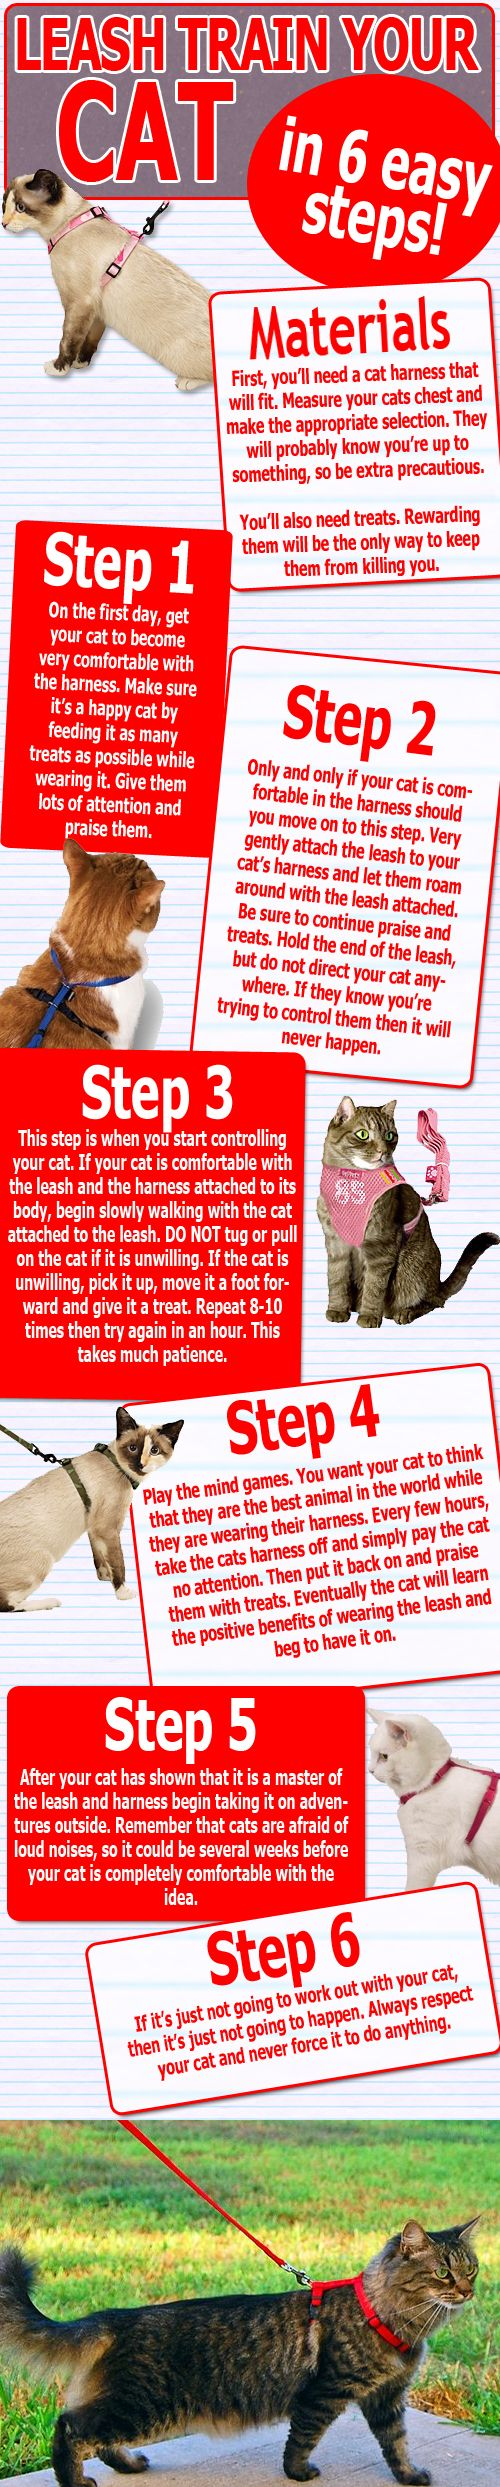 Leash Train A Cat 6 Easy Steps Cat Care Tips Crazy Cats Cats